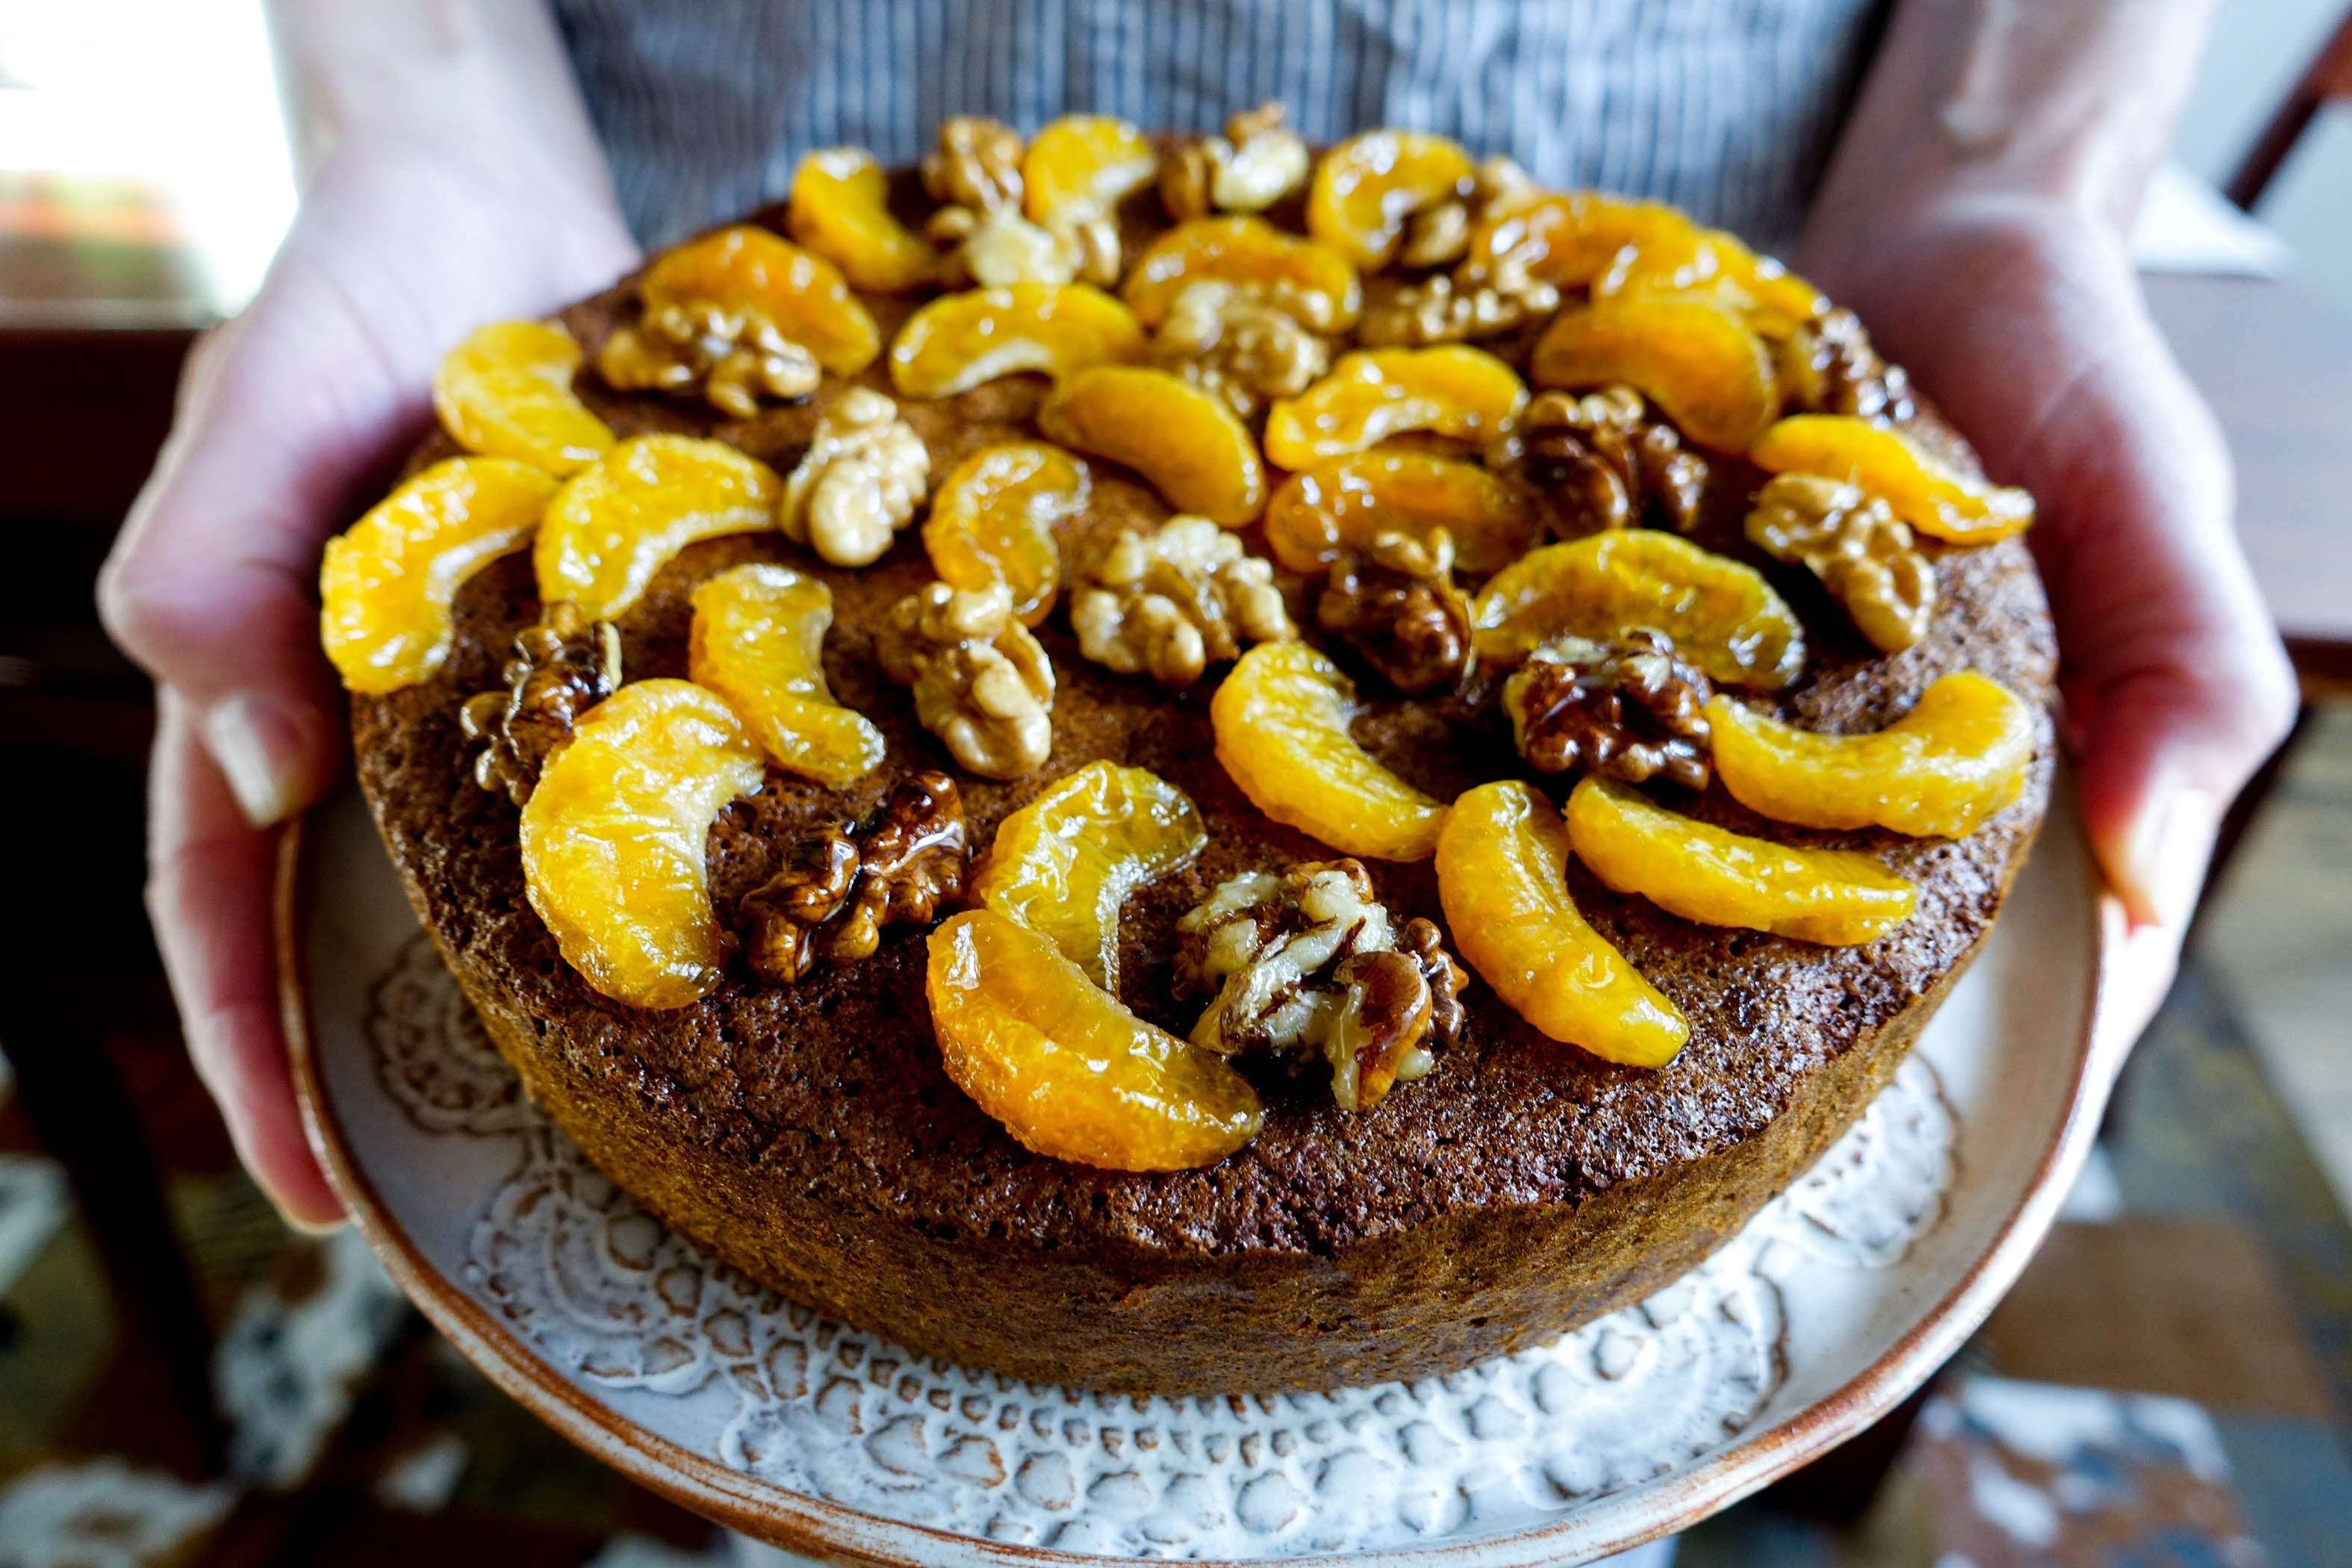 hands on tangerine walnut choc flourless cake-italy on my mind